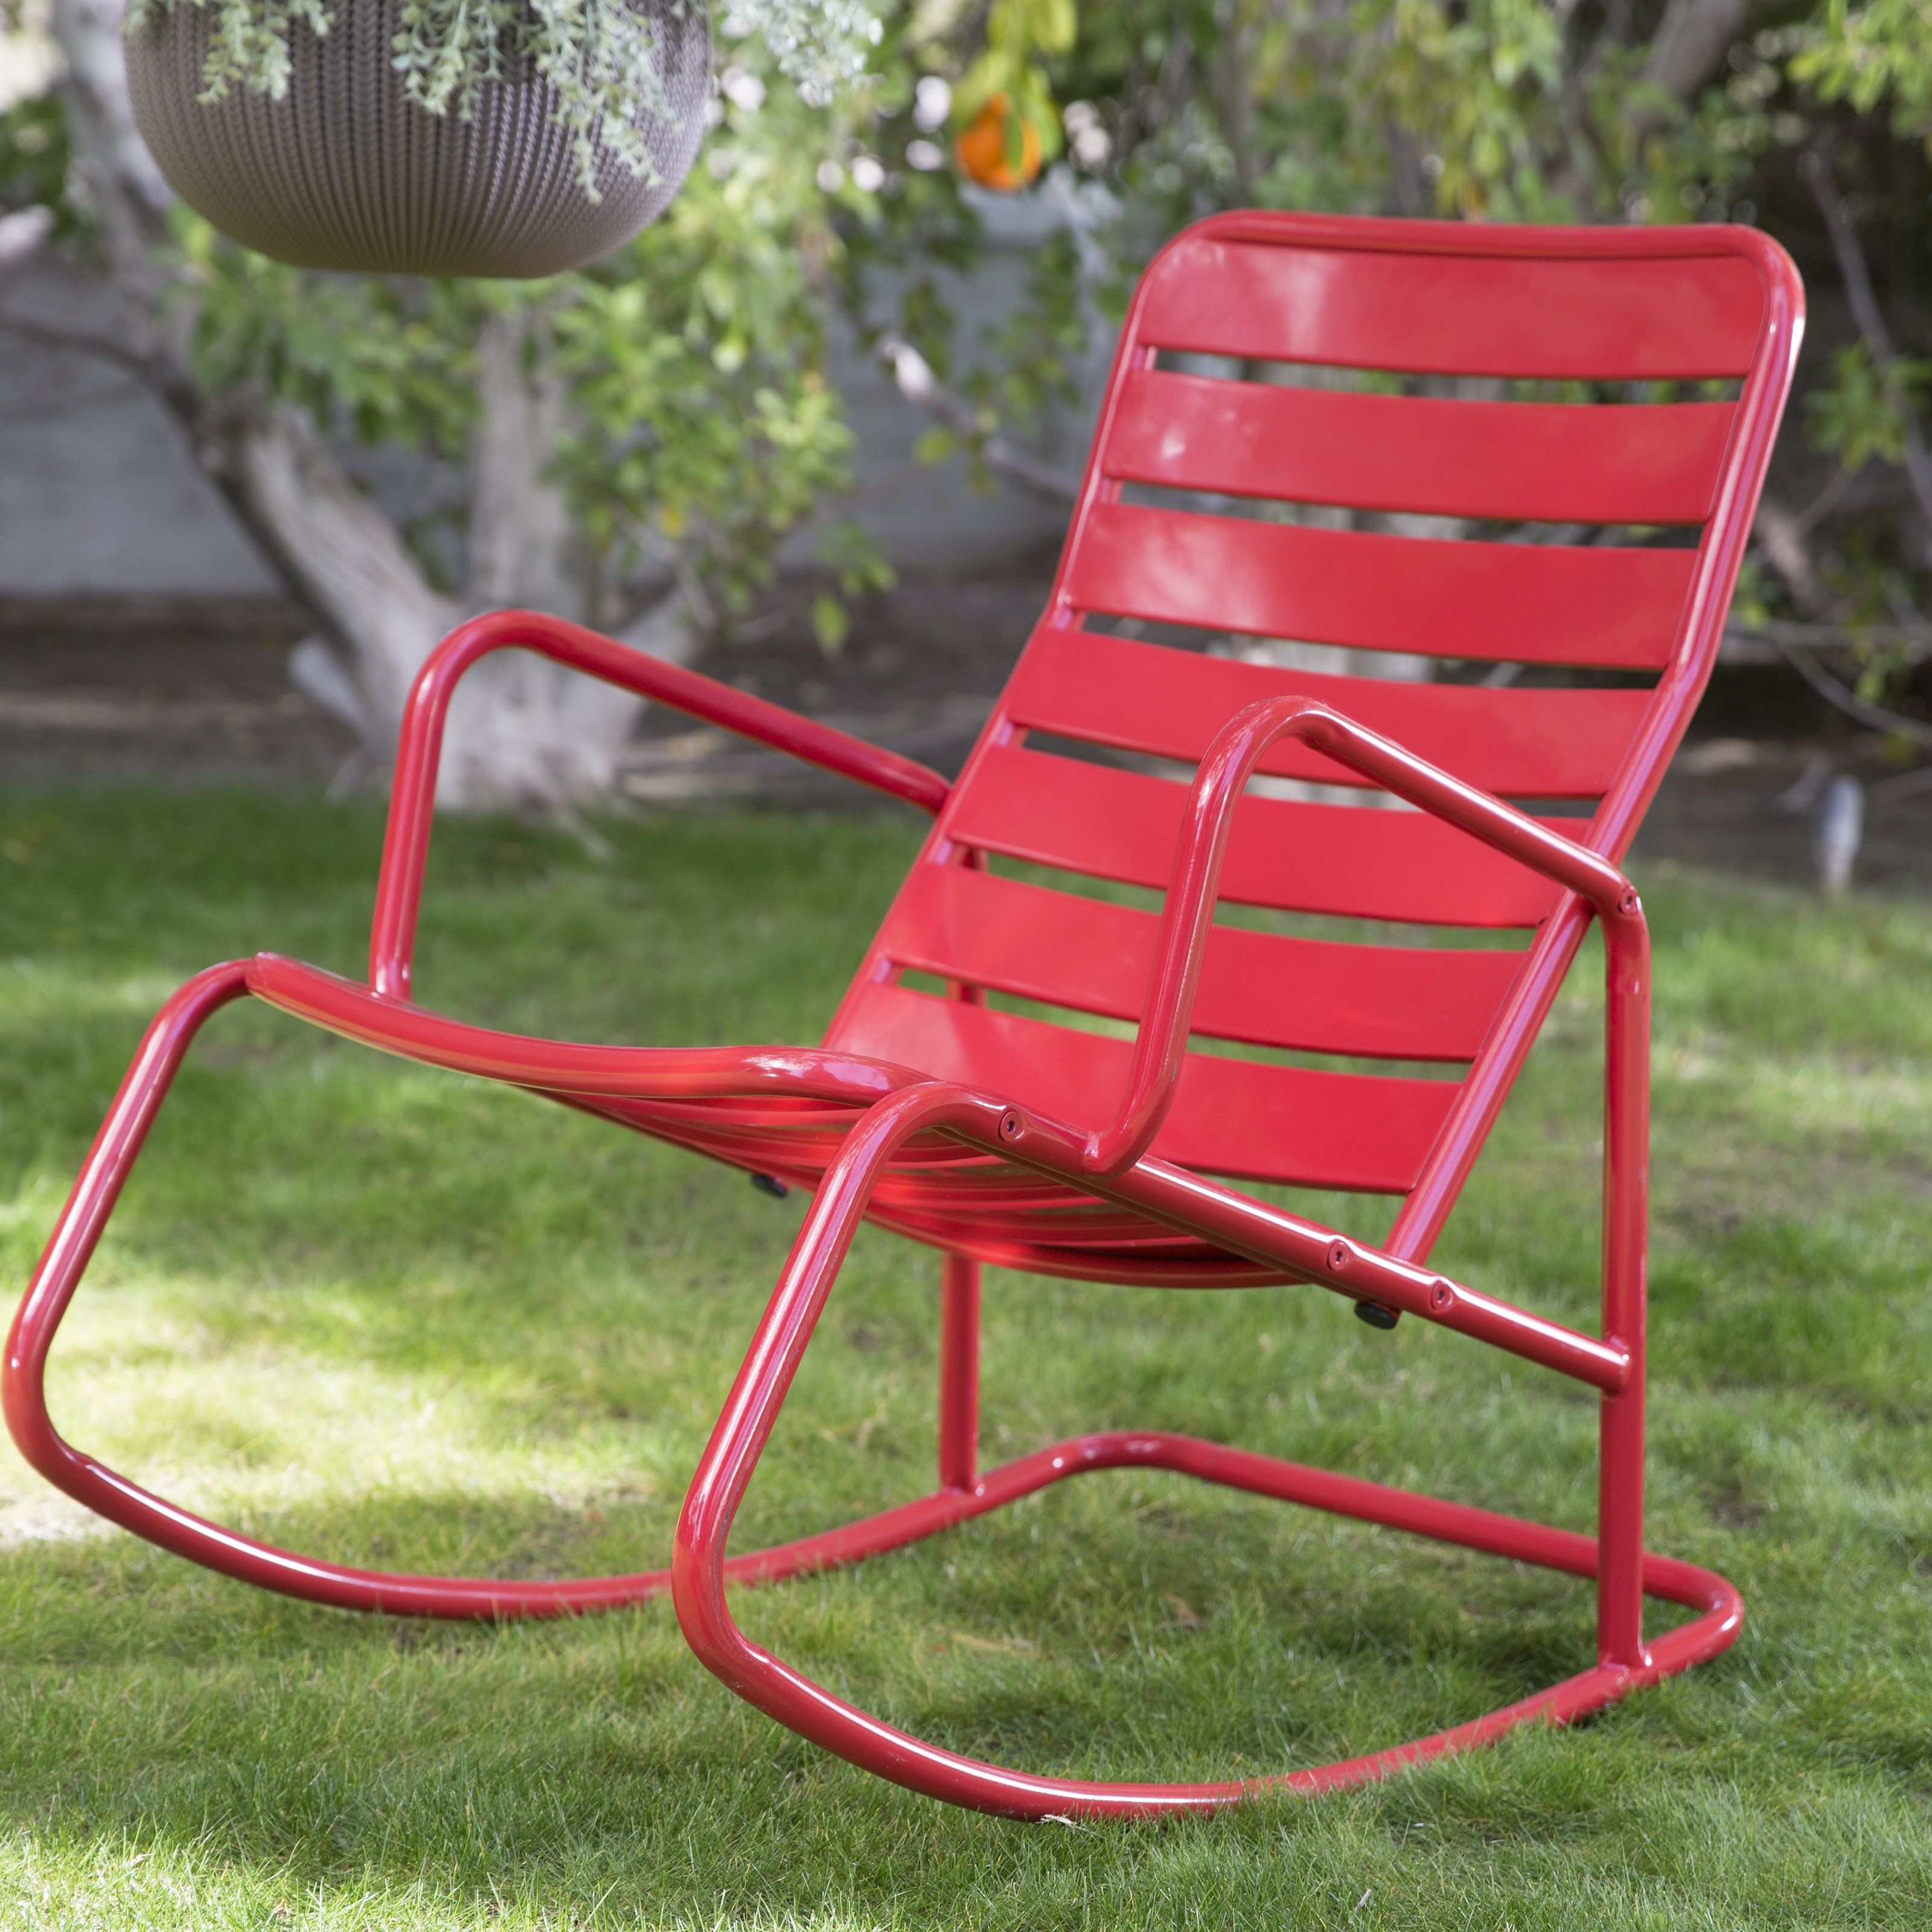 Belham Living Adley Outdoor Metal Slat Rocking Chair – Contemporary For Newest Retro Outdoor Rocking Chairs (View 5 of 15)